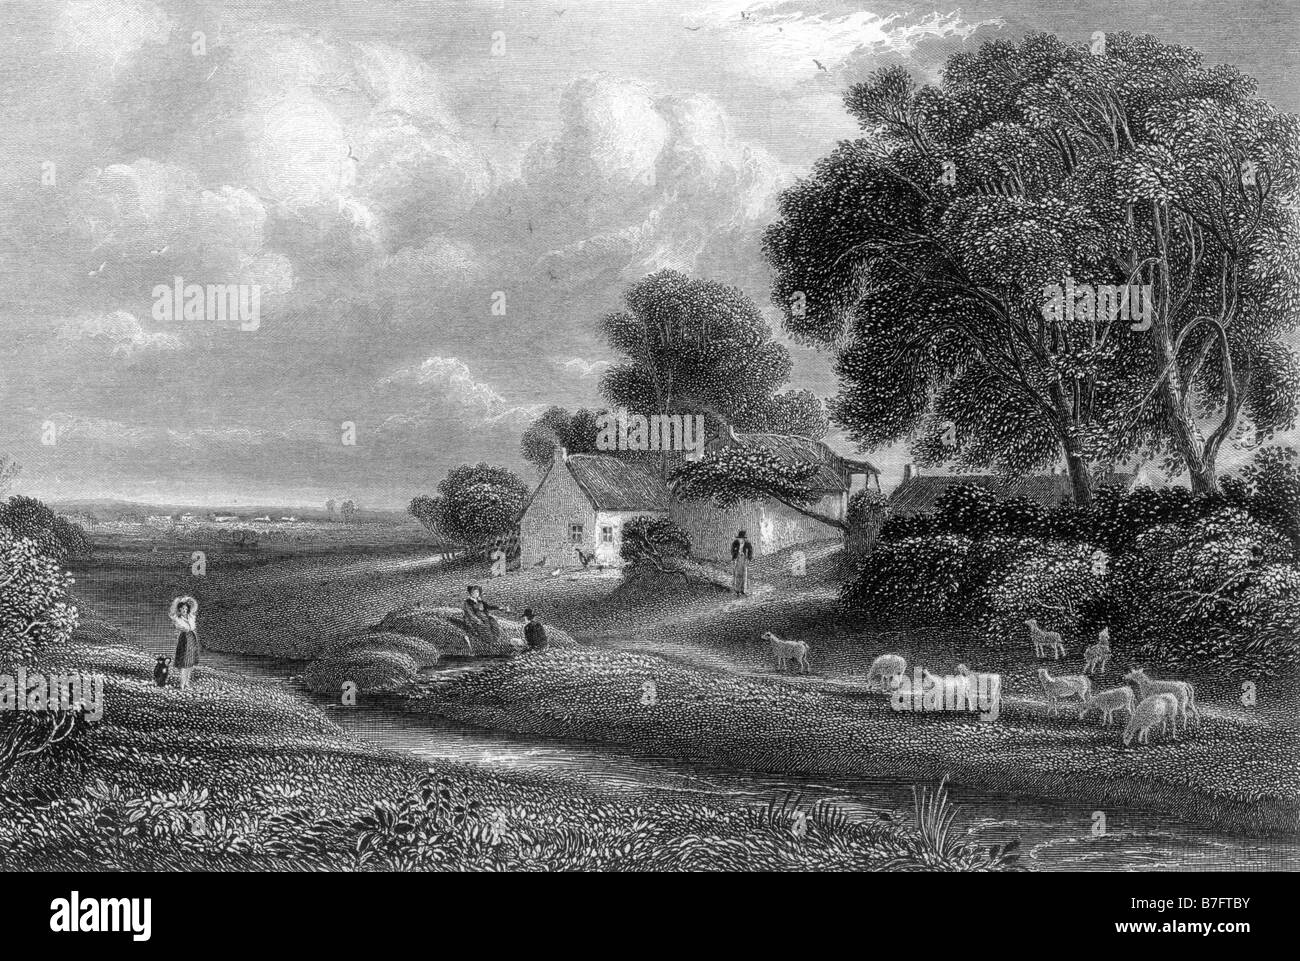 Brow on the Solway Dumfrieshire Scotland Engraving by David Octavius Hill 1802 to 1870 19th Century Illustration - Stock Image